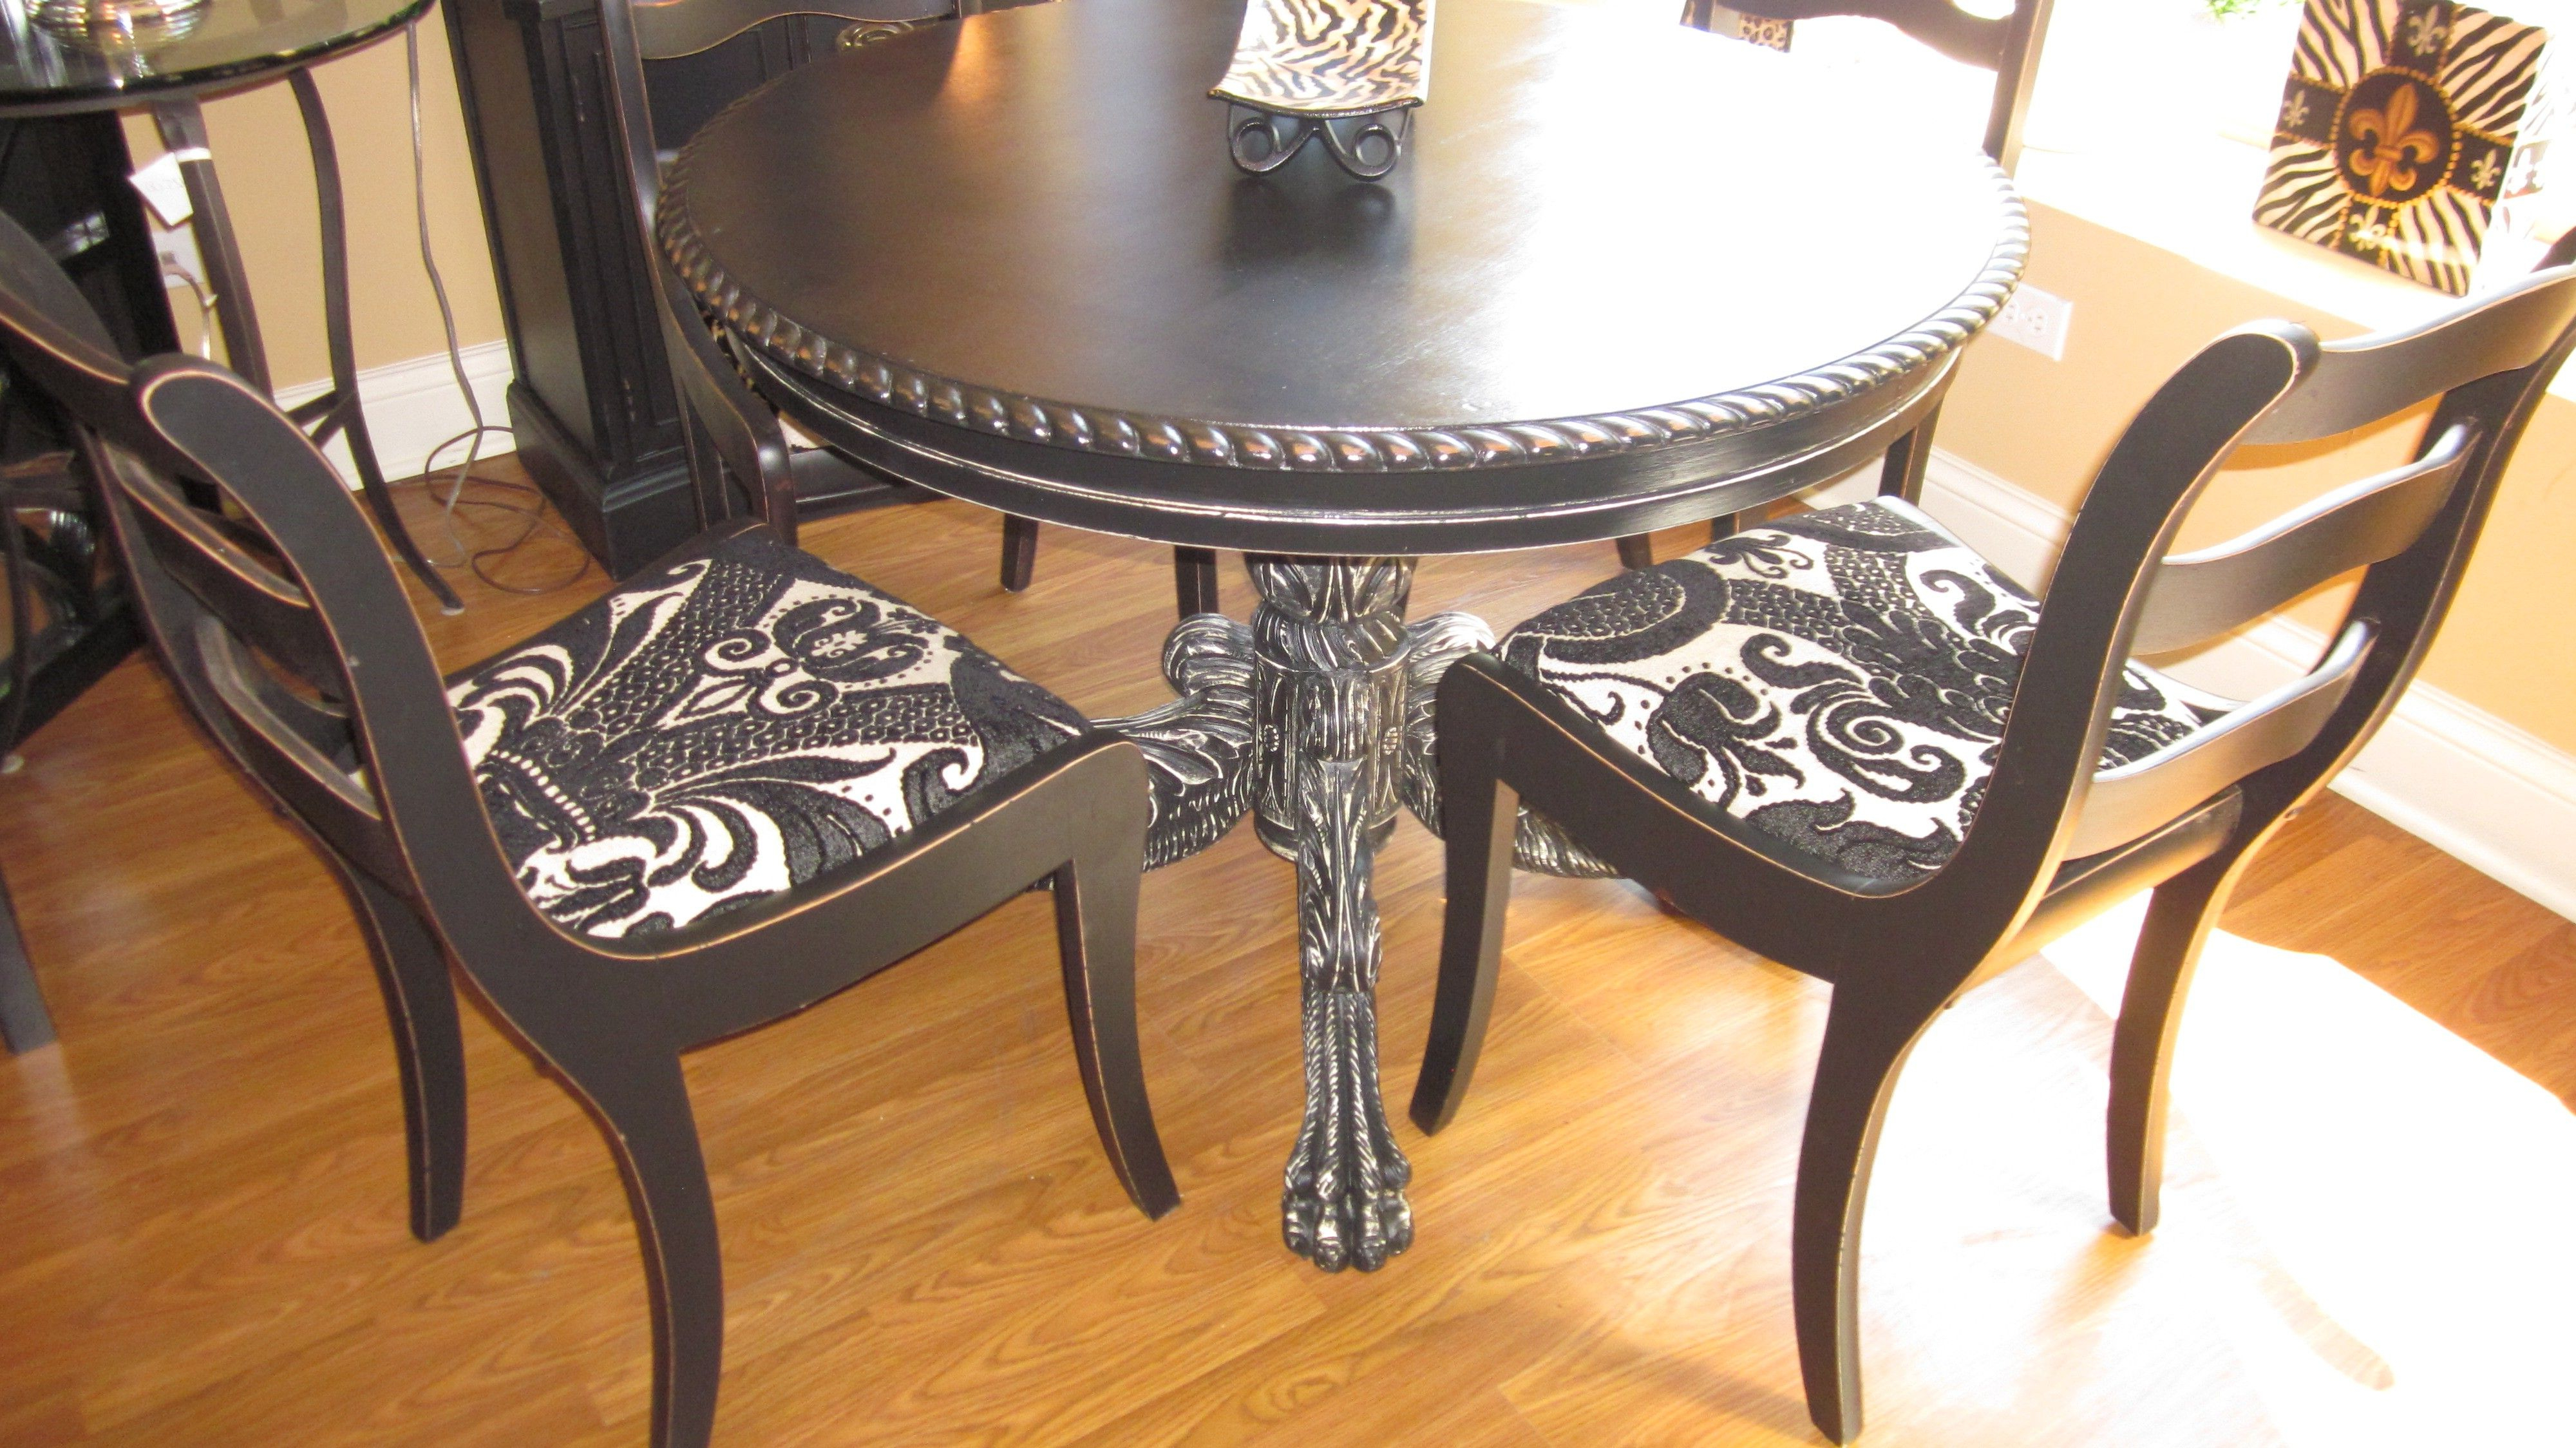 Chari Media Center Tables Pertaining To Most Current Claw Foot Table And Chairs $550 – Riverside Http://furnishly (View 19 of 20)